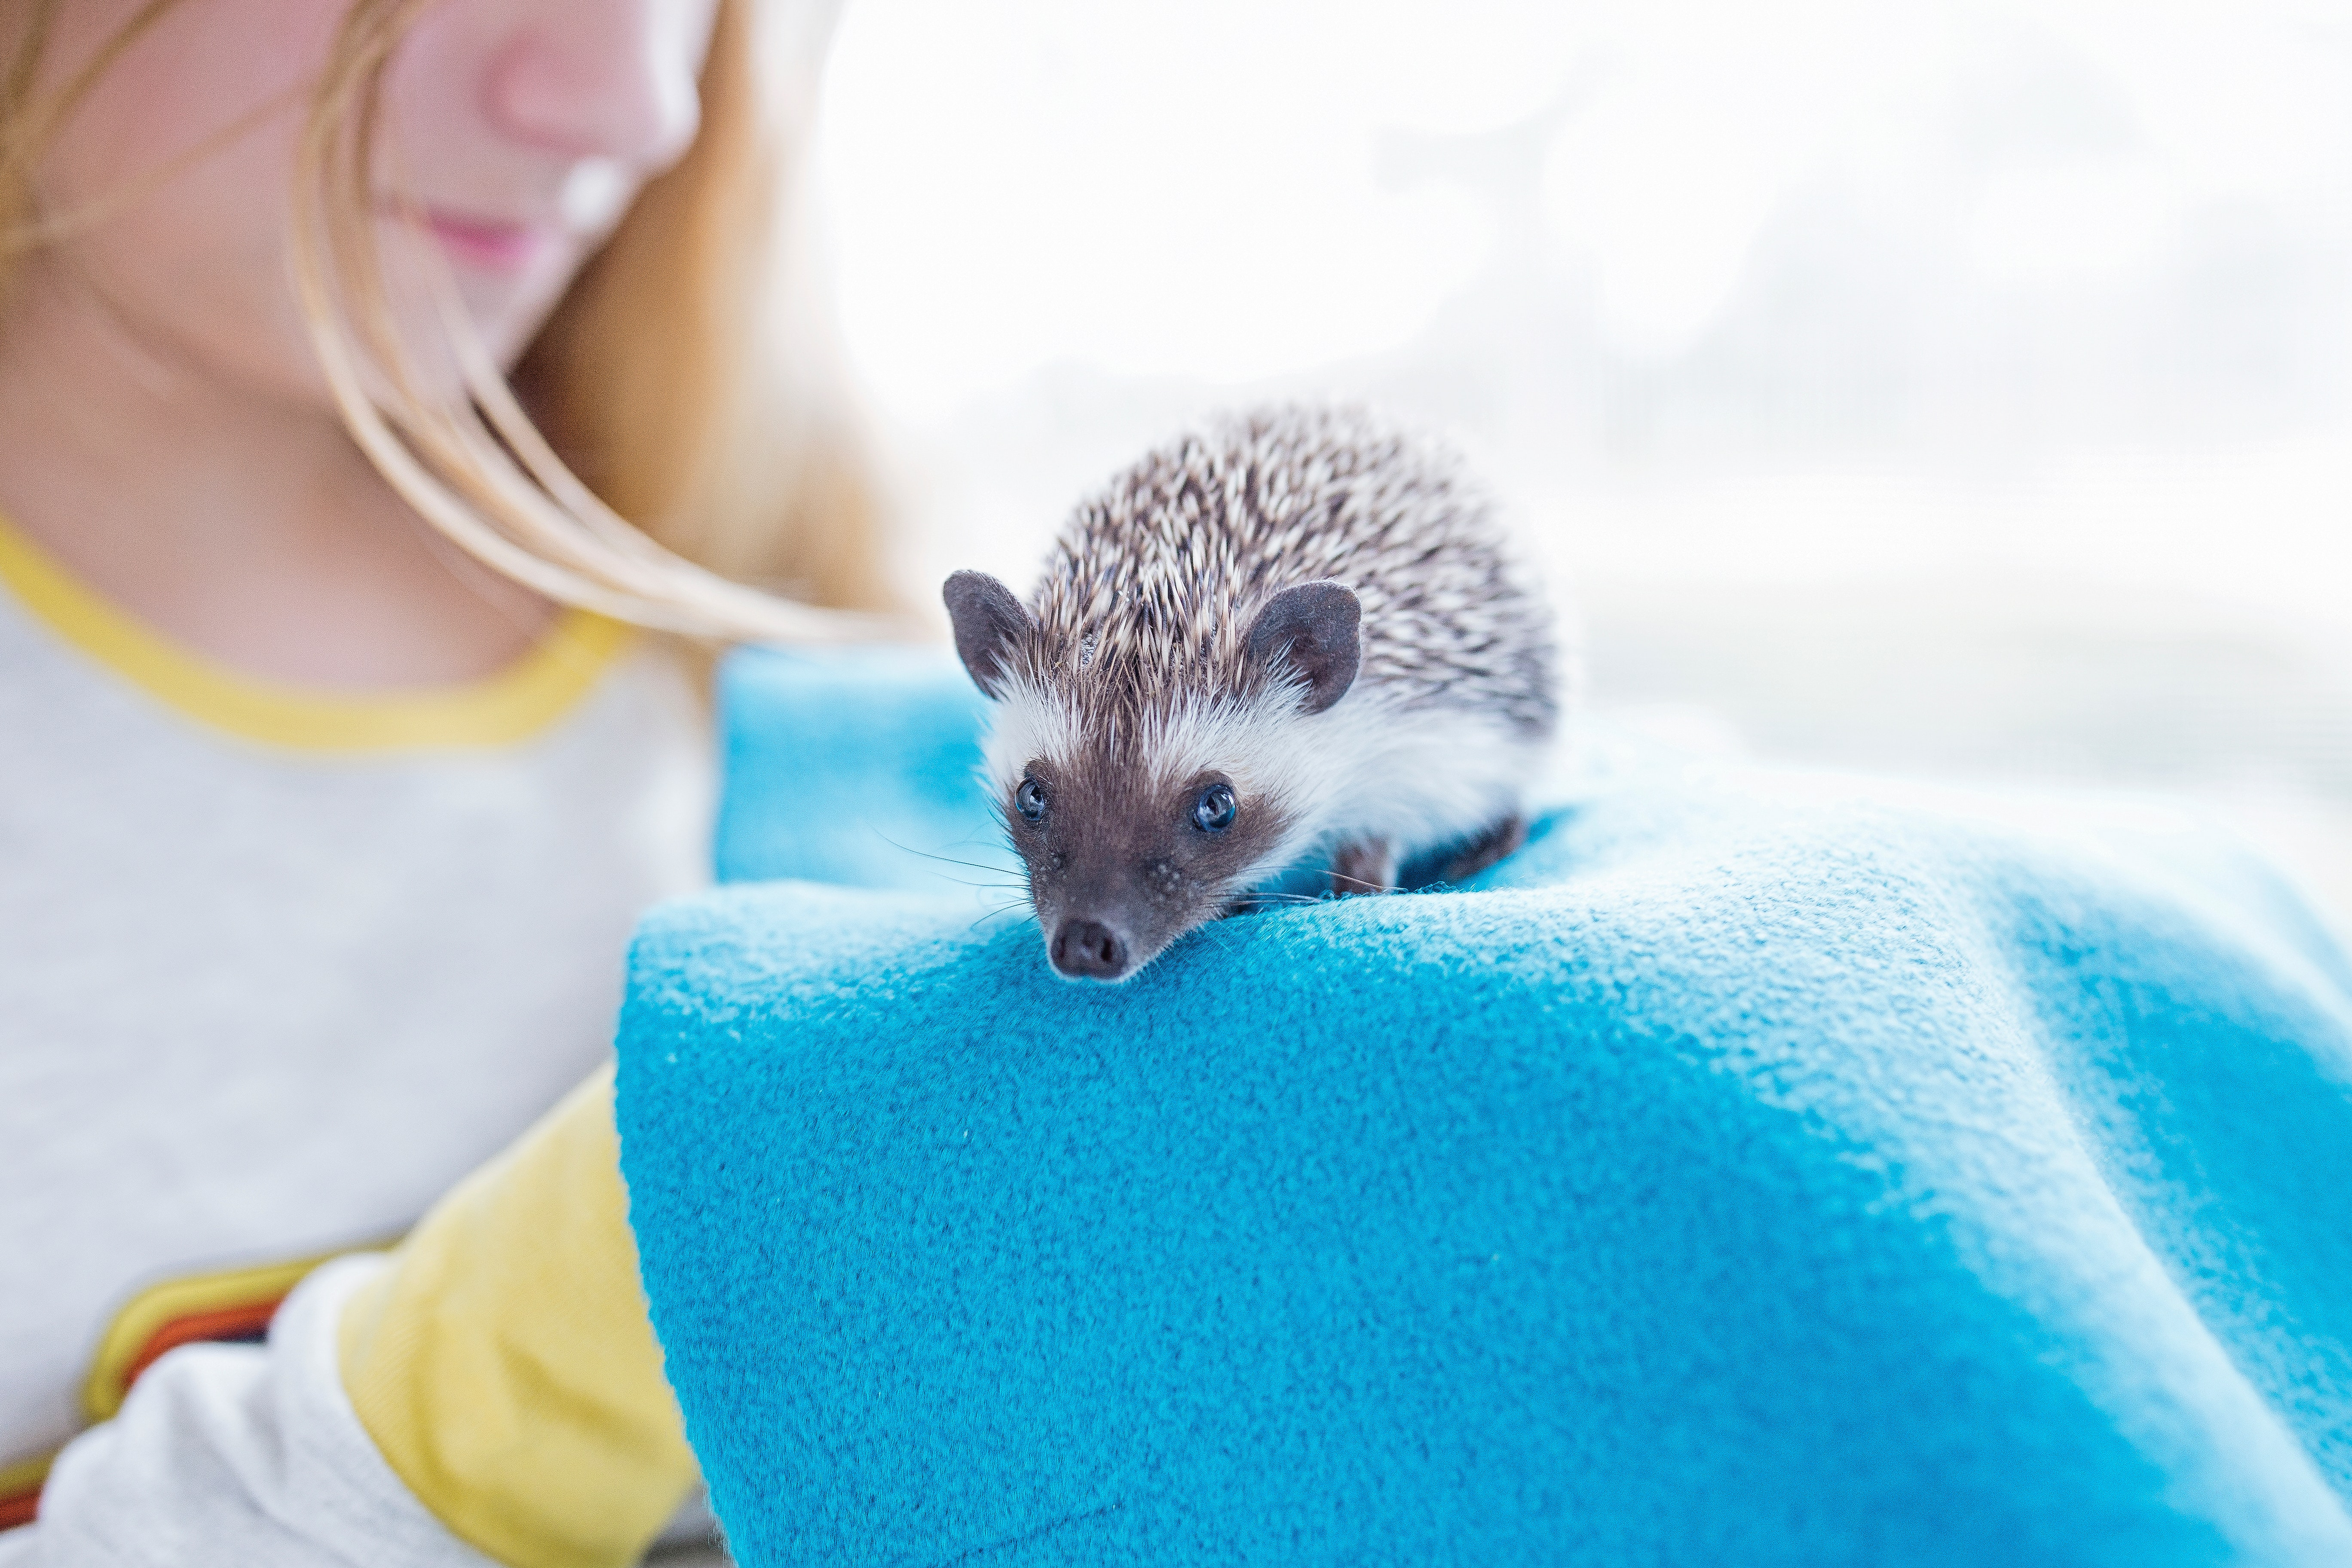 Woman Near Brown and White Rodent, Adorable, Hedgehog, Precious, Pet, HQ Photo